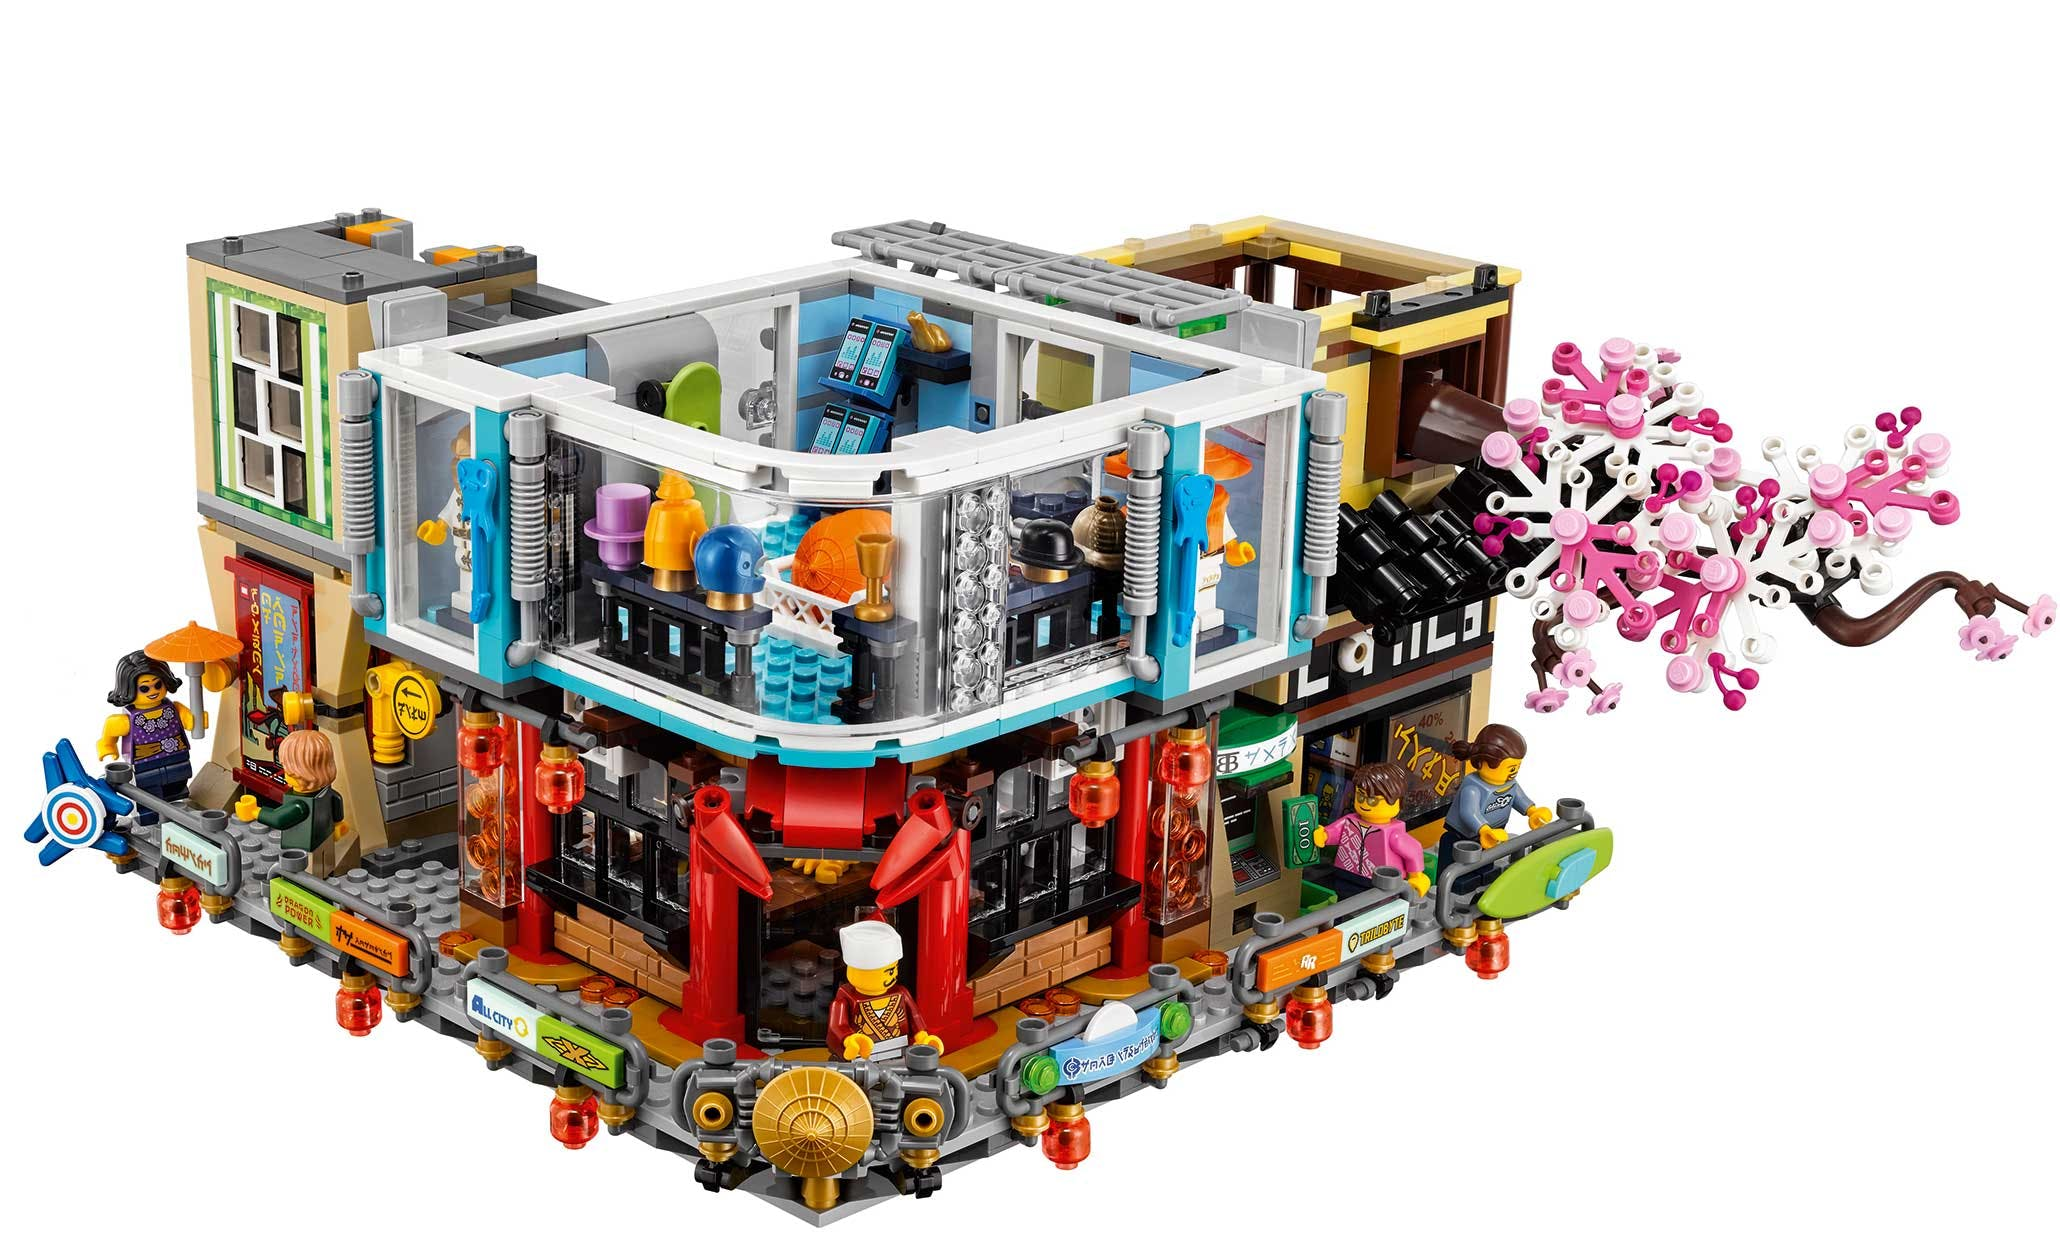 LEGO Ninjago Movie set